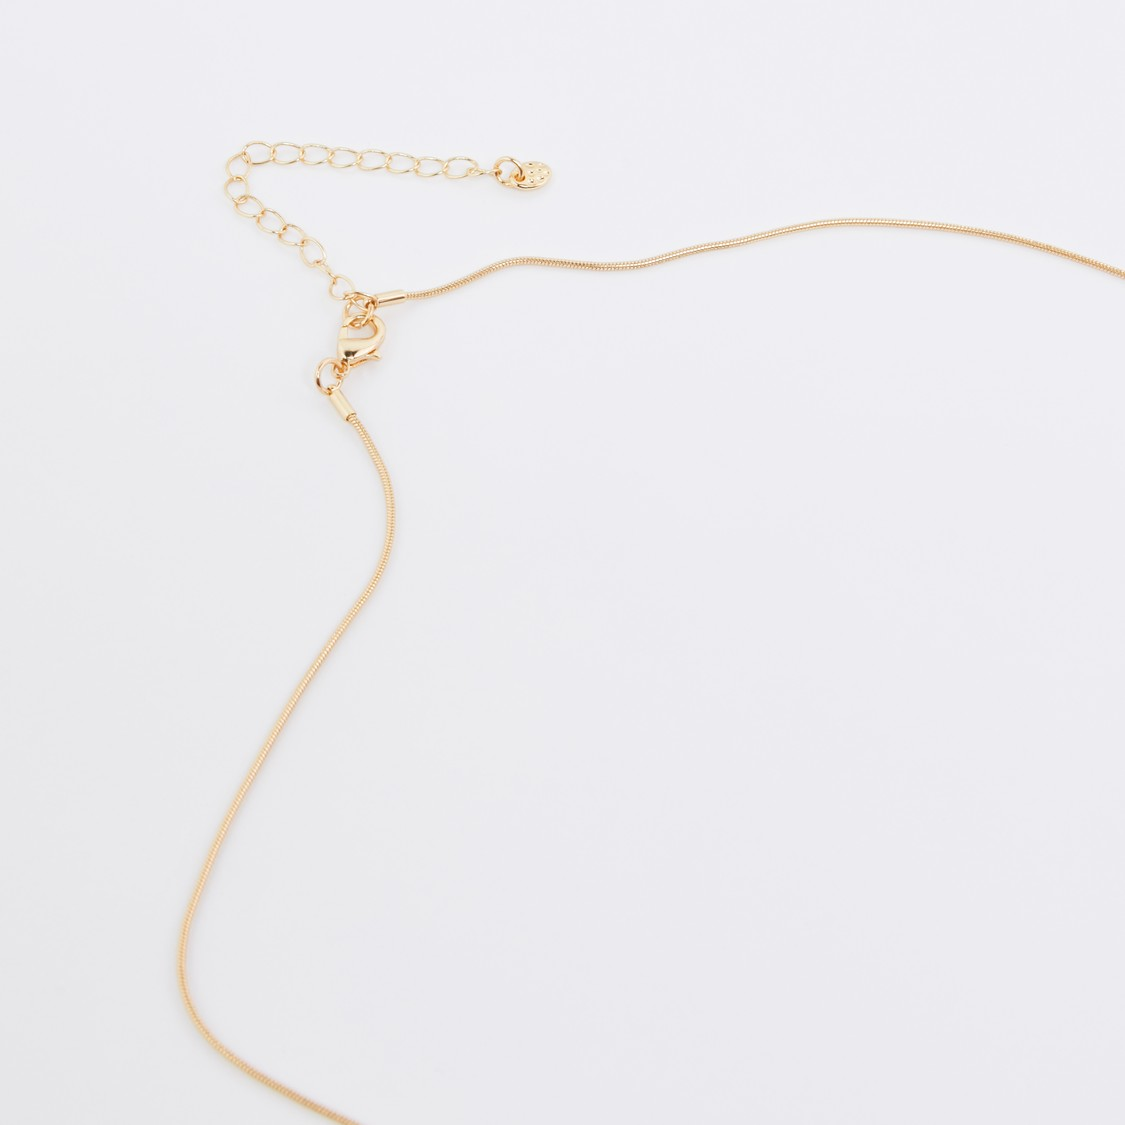 Metallic Long Necklace with Tassels and Stud Detail